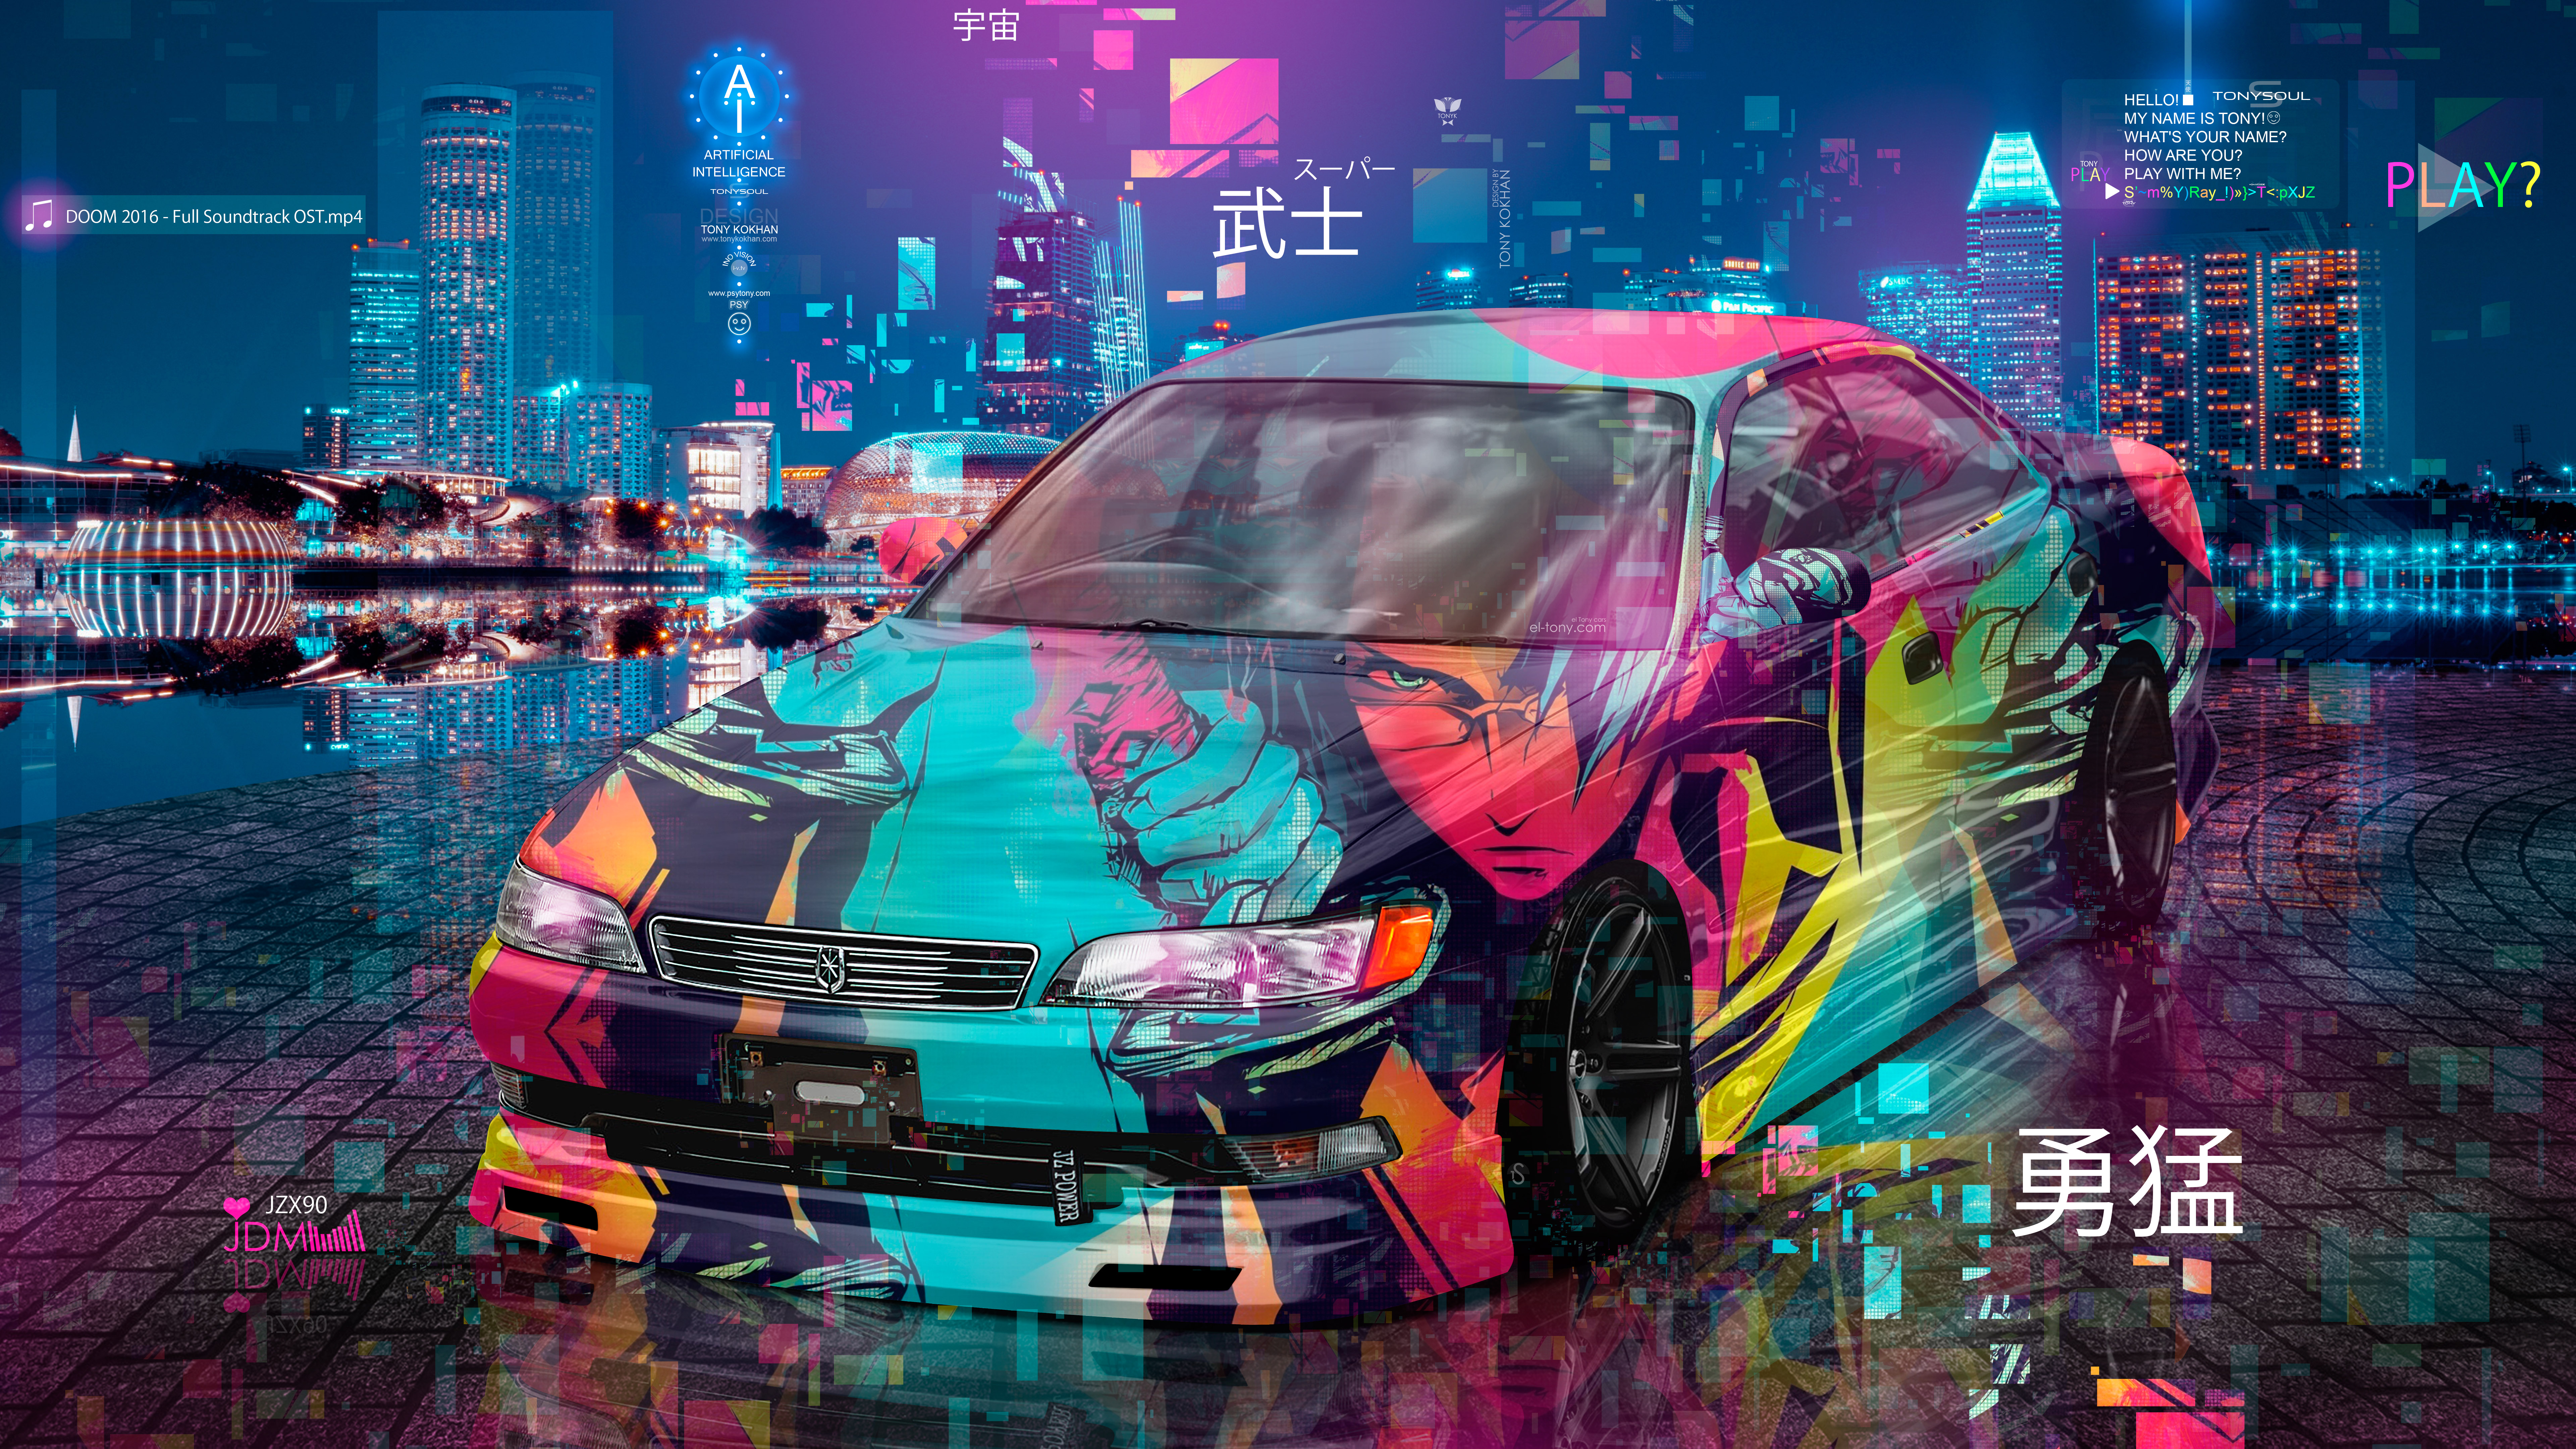 Toyota-Mark2-JZX90-JDM-Tuning-Super-Samurai-Anime-Boy-Bravery-Universe-TonySoul-Night-City-TonyCode-Art-Car-2020-Multicolors-8K-Wallpapers-design-by-Tony-Kokhan-www.el-tony.com-image